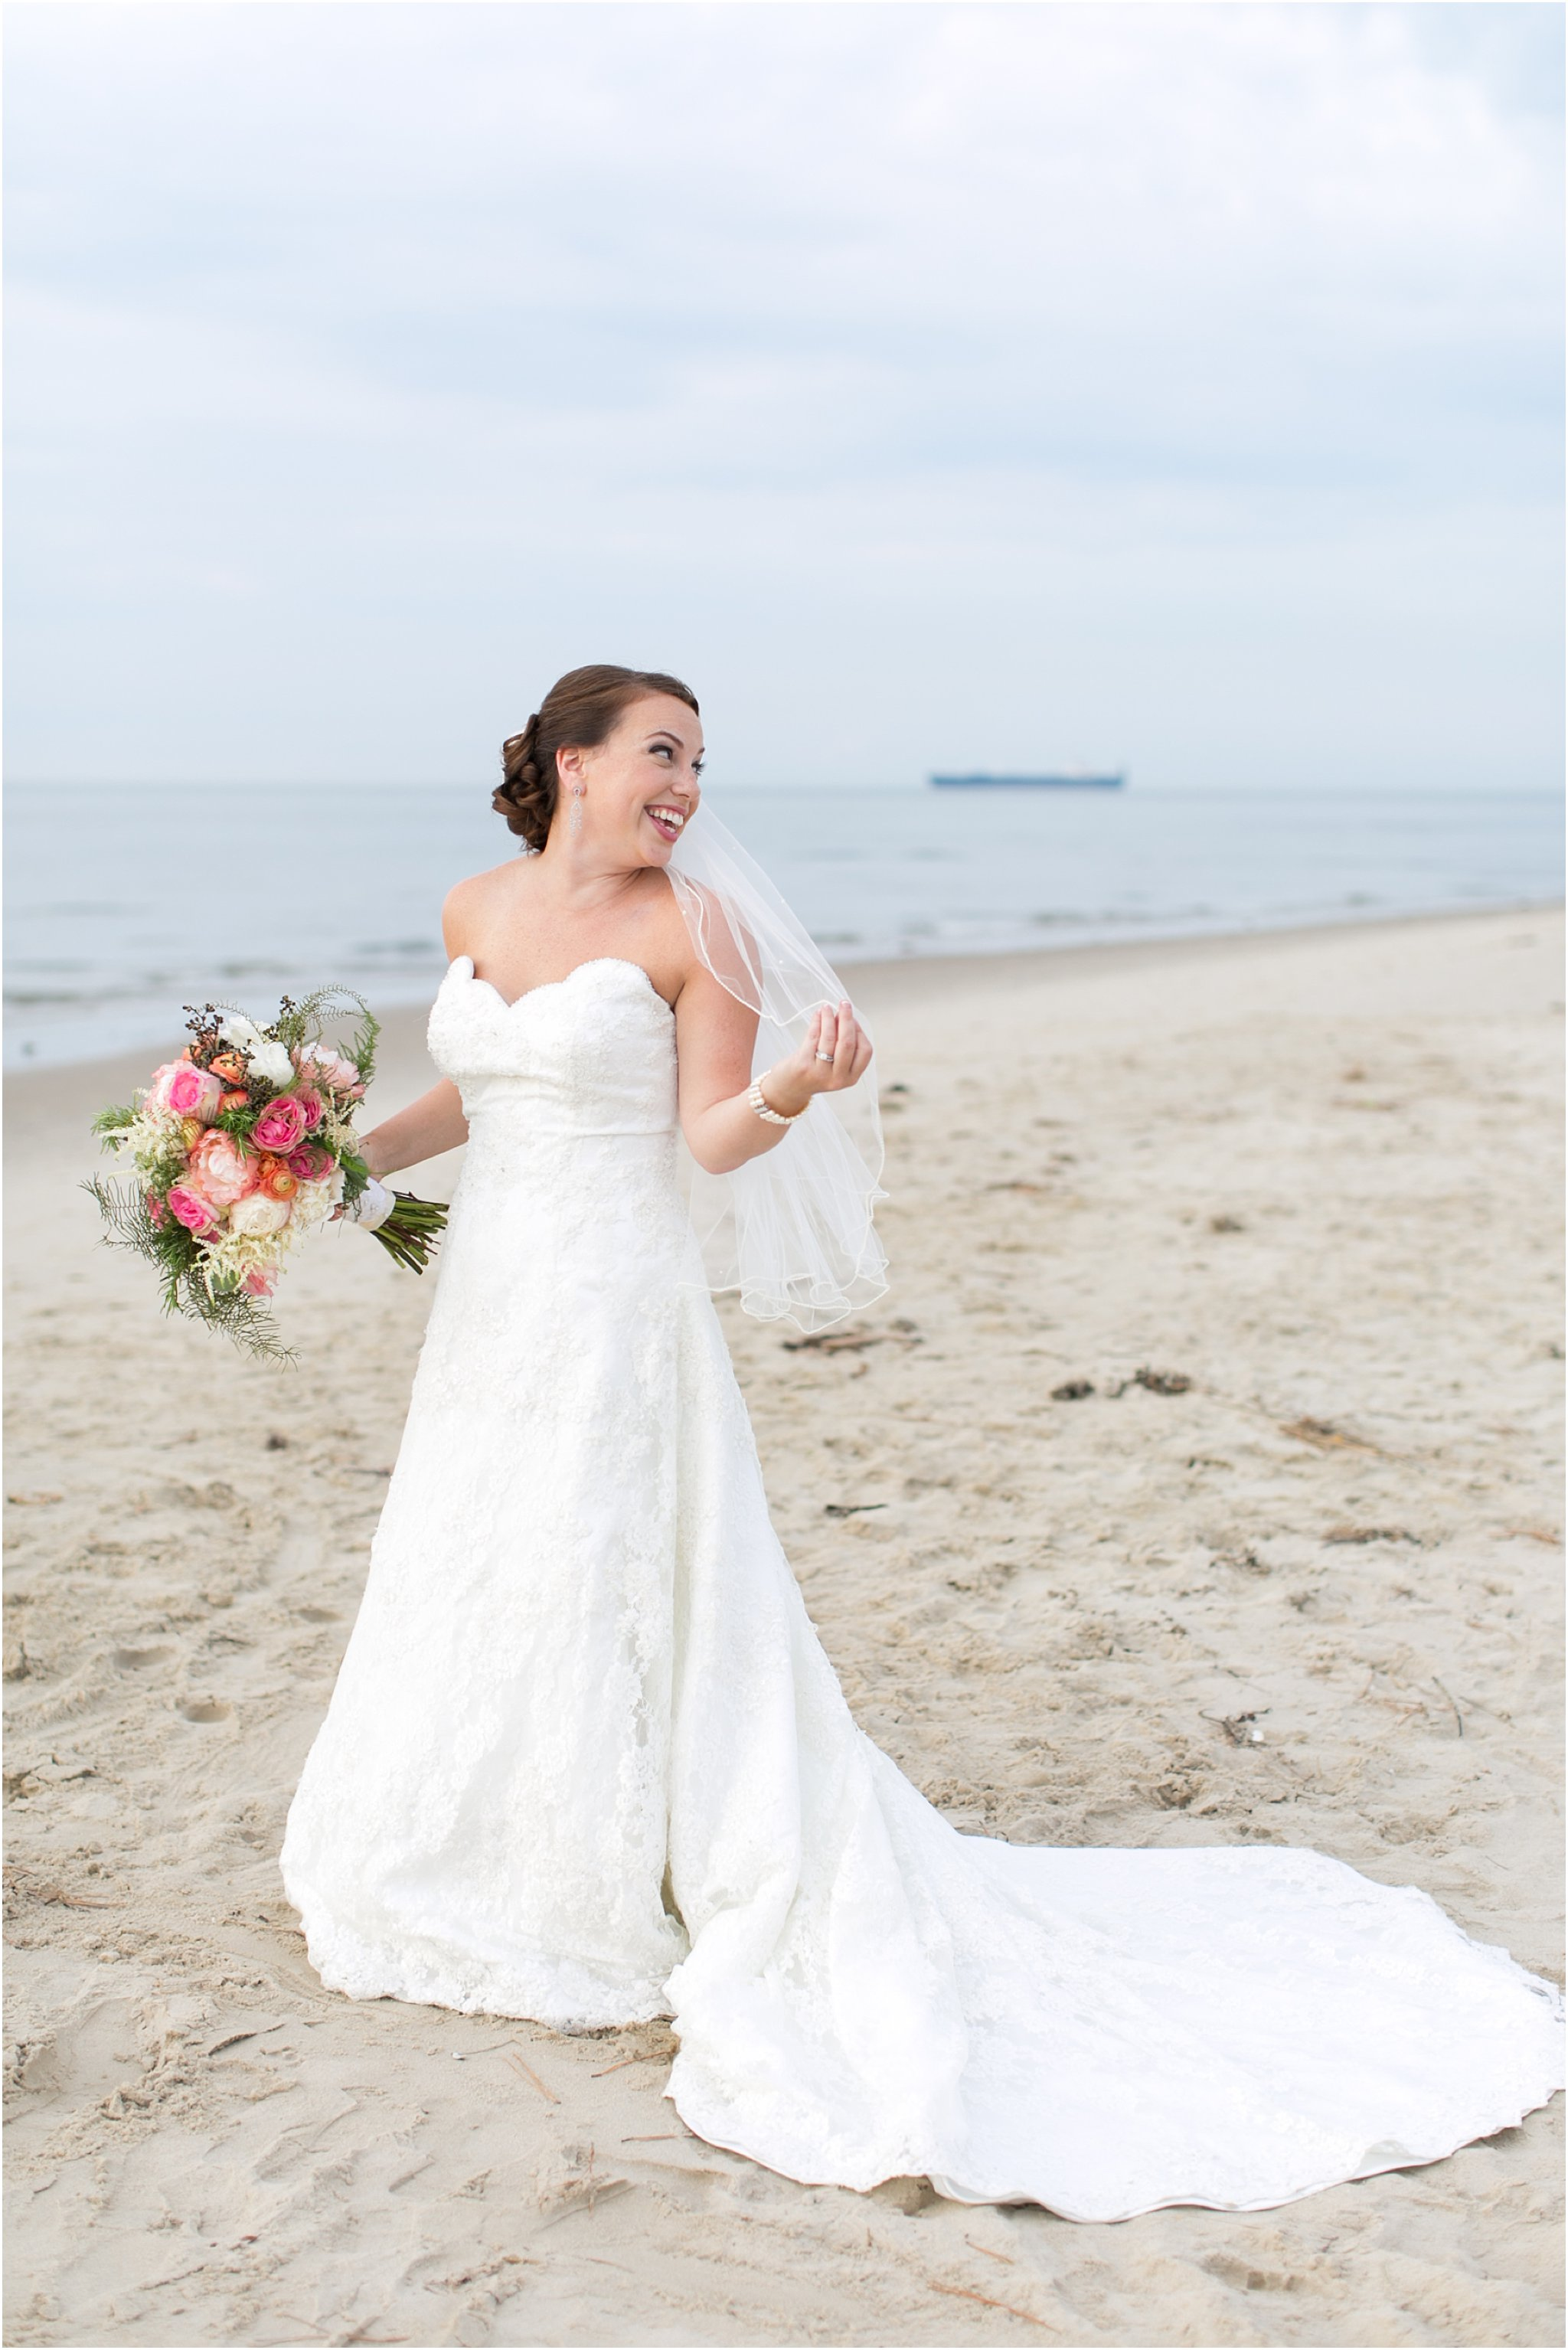 jessica_ryan_photography_wedding_photography_virginiabeach_virginia_candid_authentic_wedding_portraits_marina_shores_yacht_club_chesapeake_bay_1878